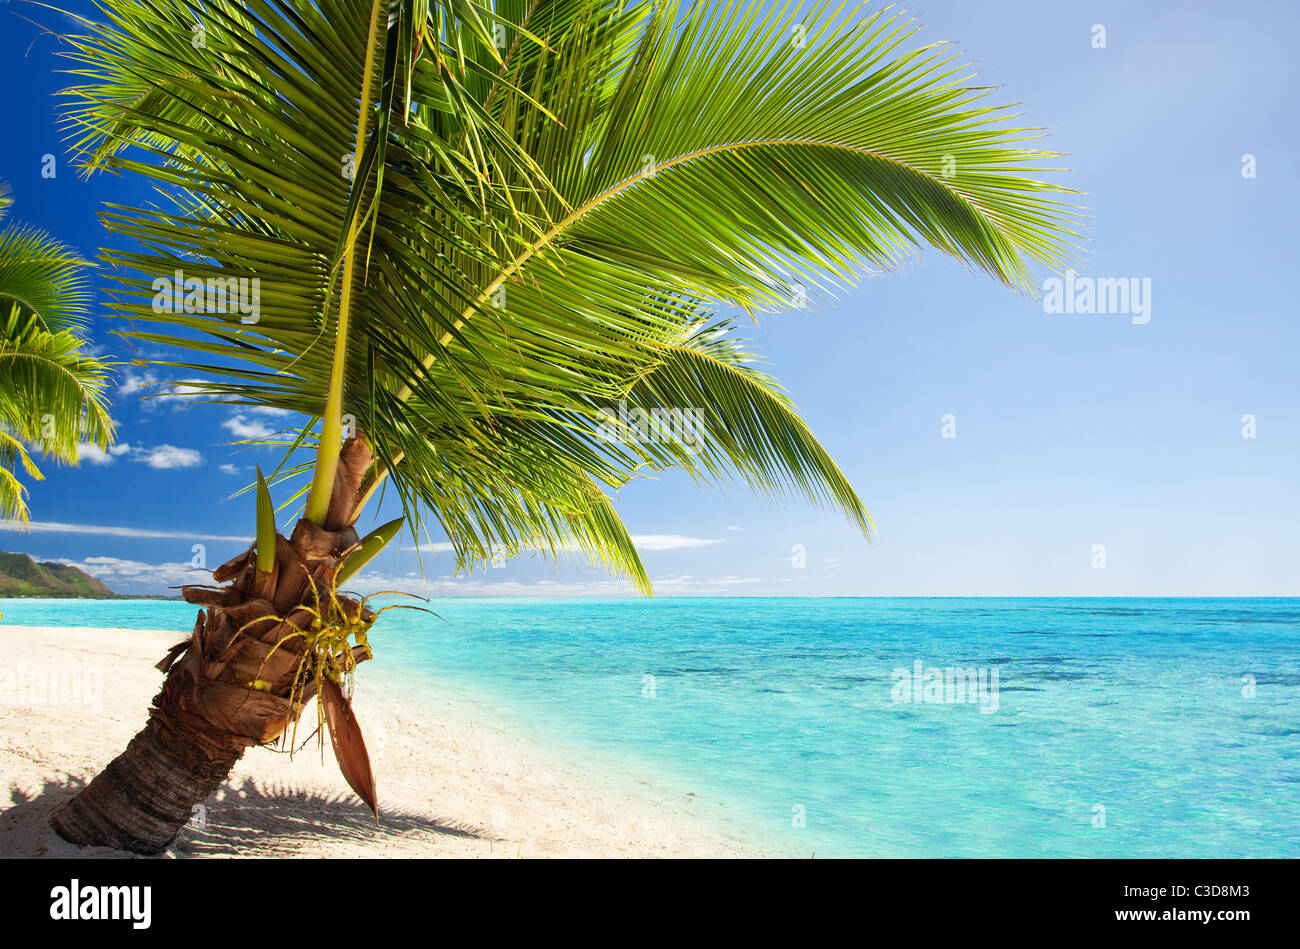 Small palm tree hanging over stunning blue lagoon - Stock Image